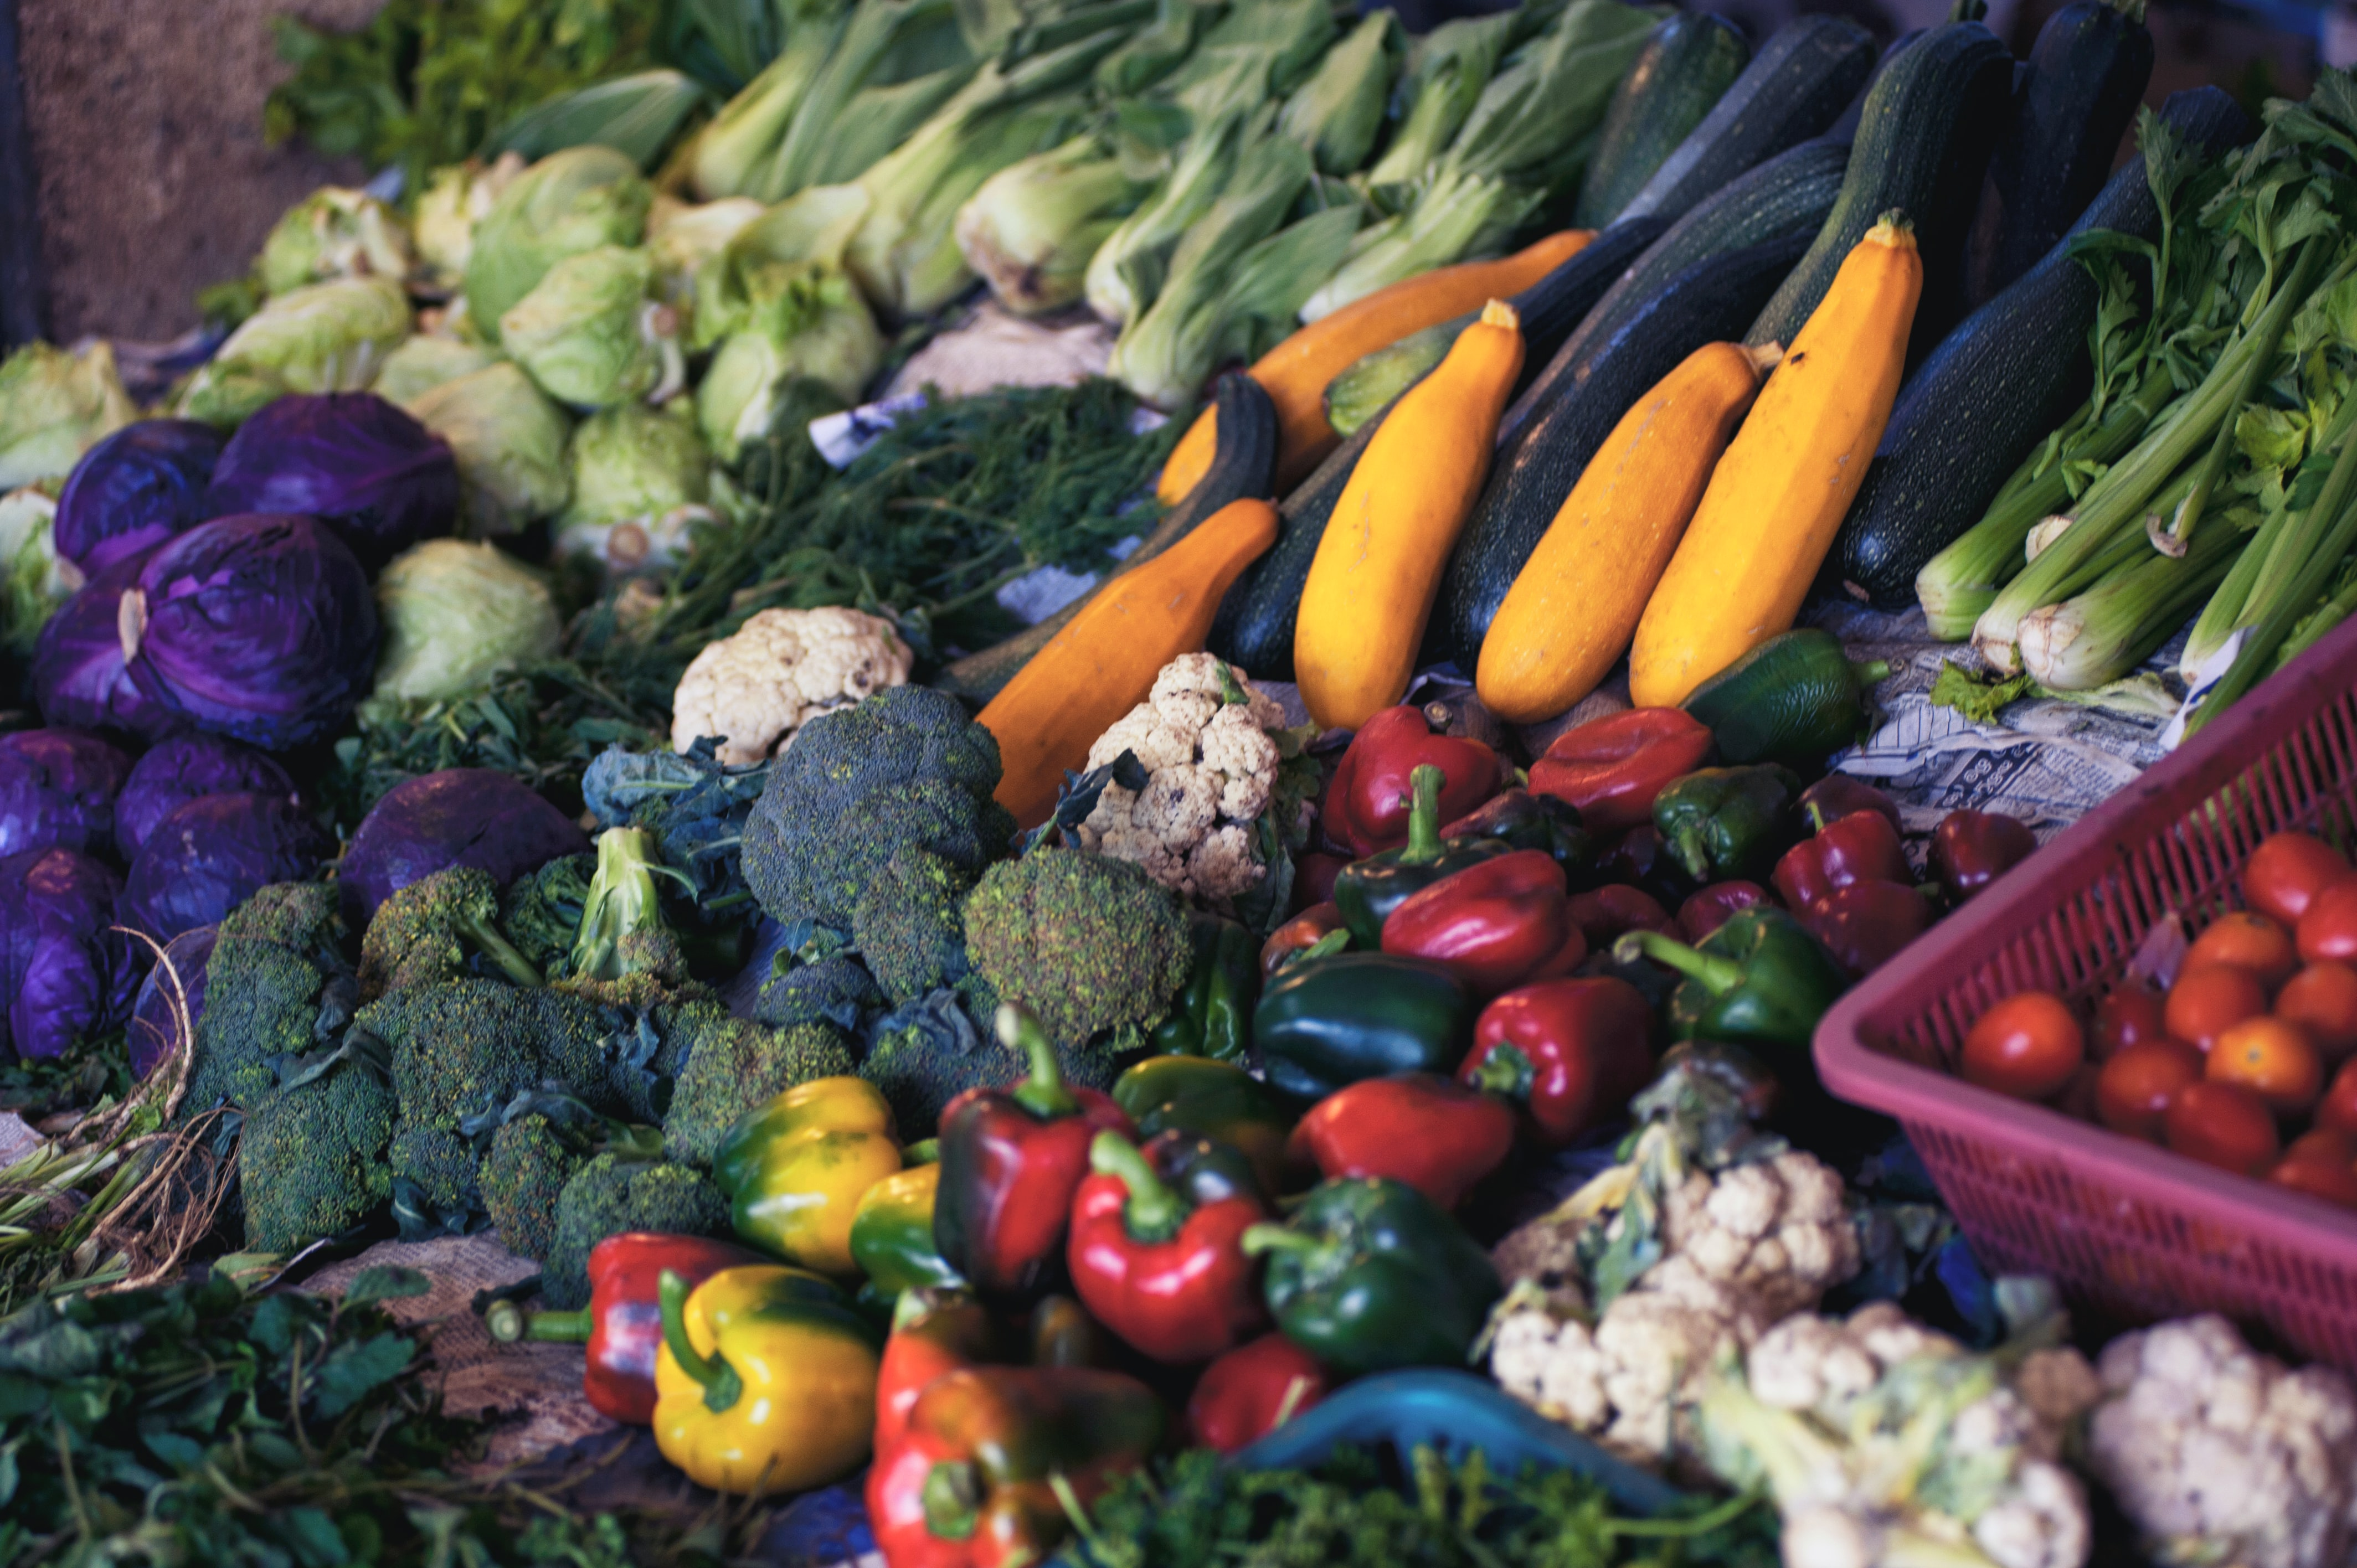 turkington medical success in life health career and relationships Five Amazing Ways to Add Vegetables to Your Diet